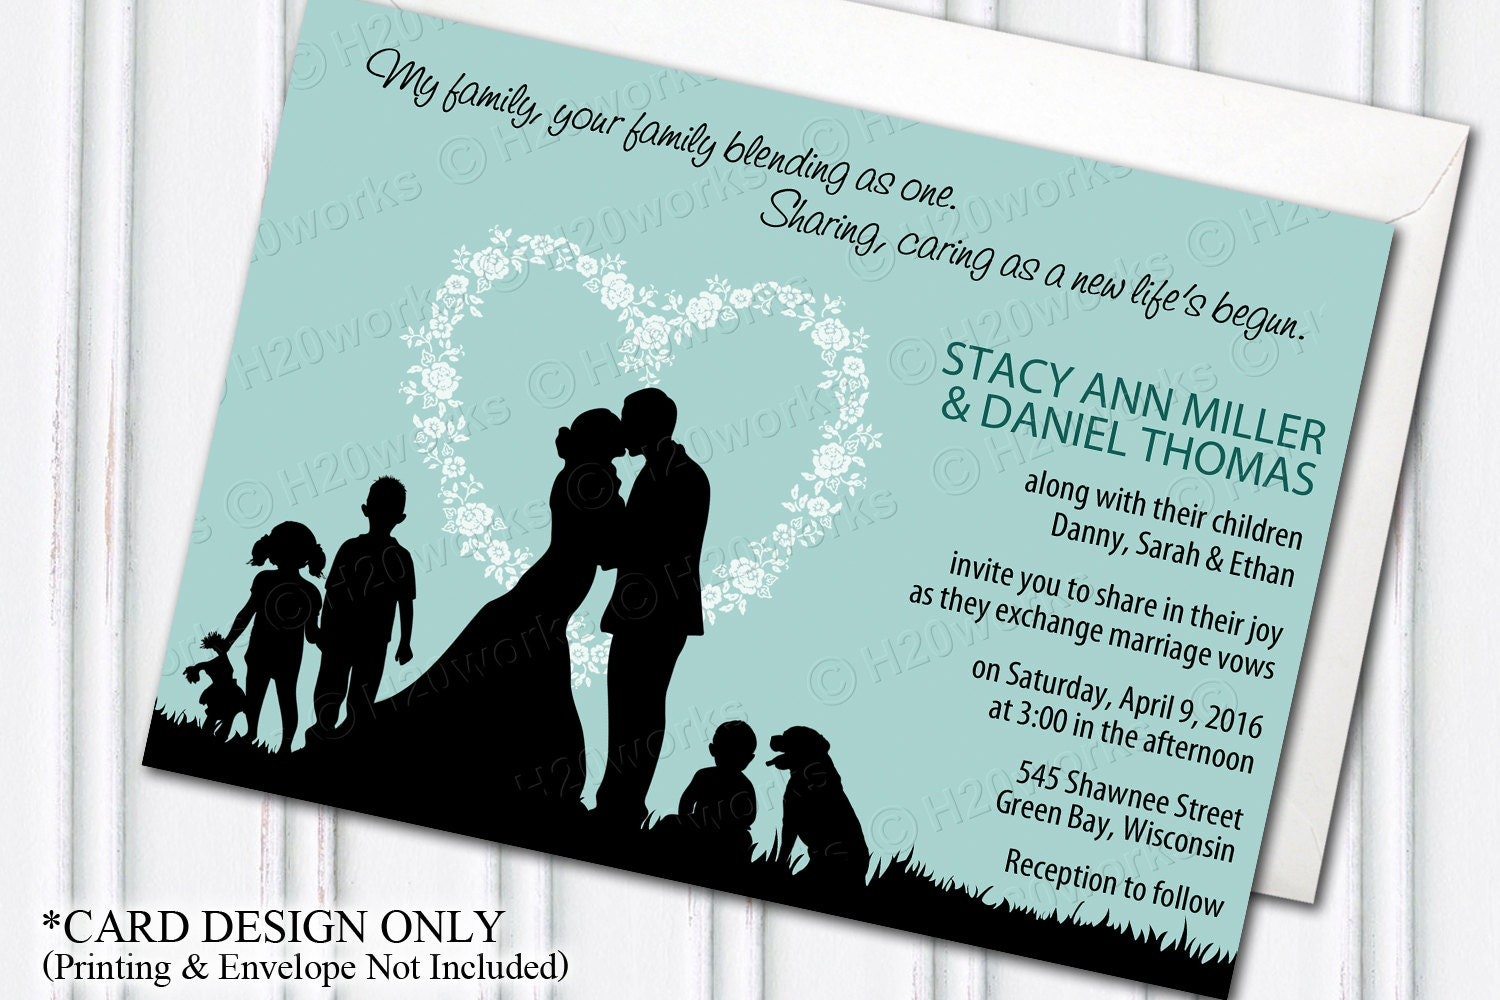 Unique Wedding Invitations For Blended Families Wedding Ideas